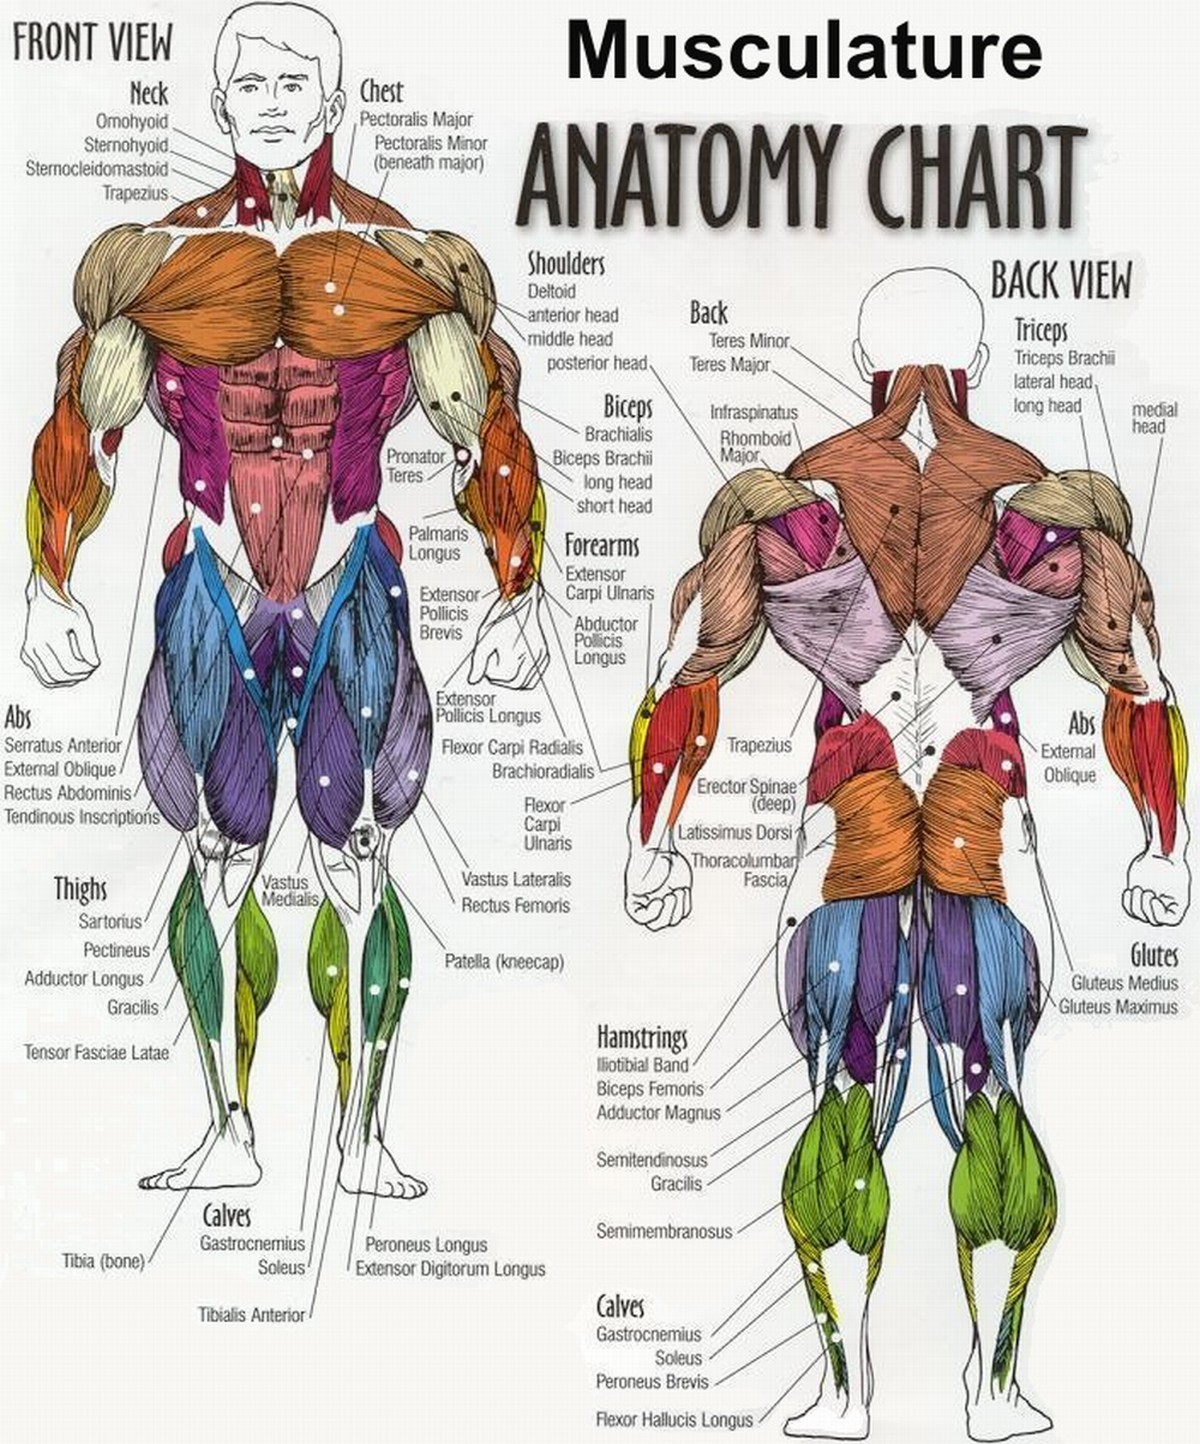 Body Muscle Anatomy Chart